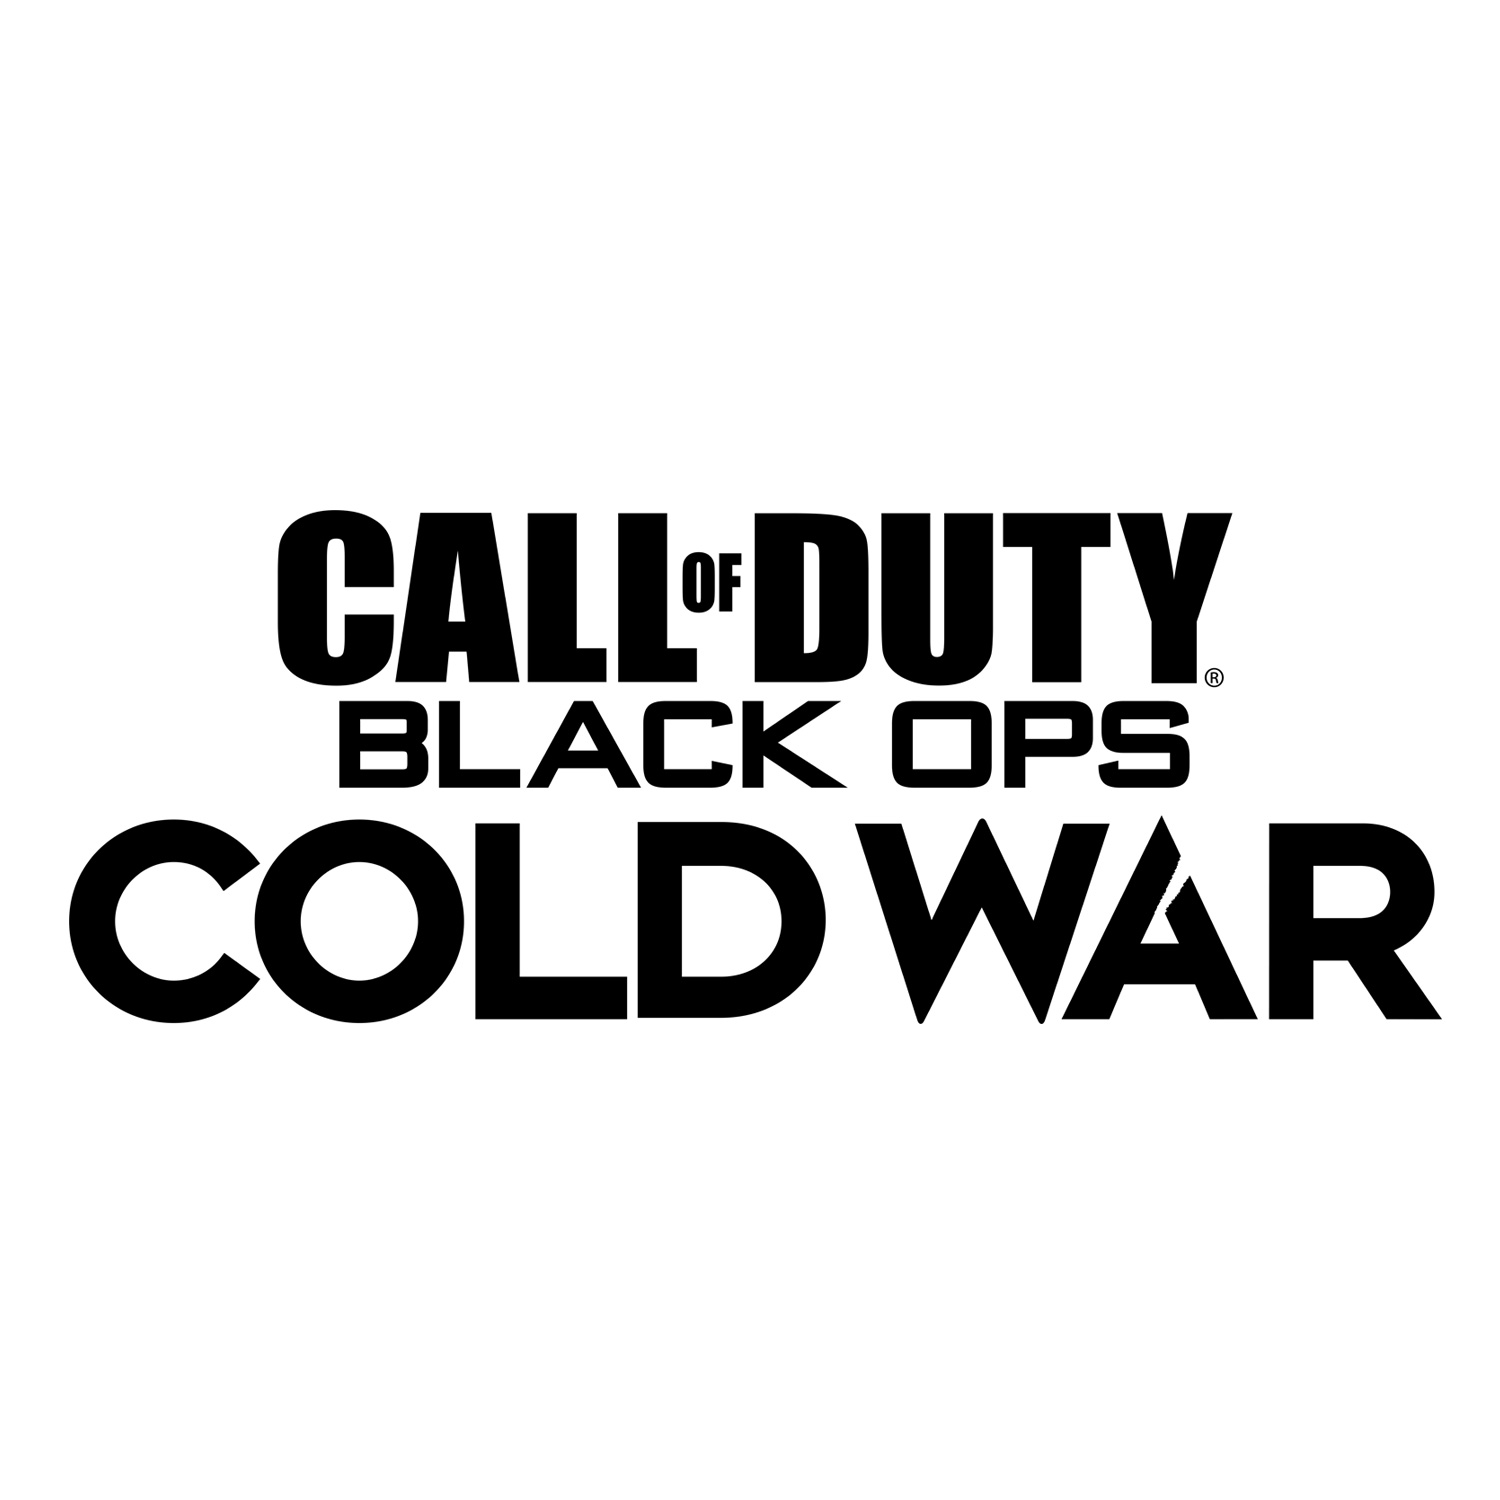 Call of Duty Game logo